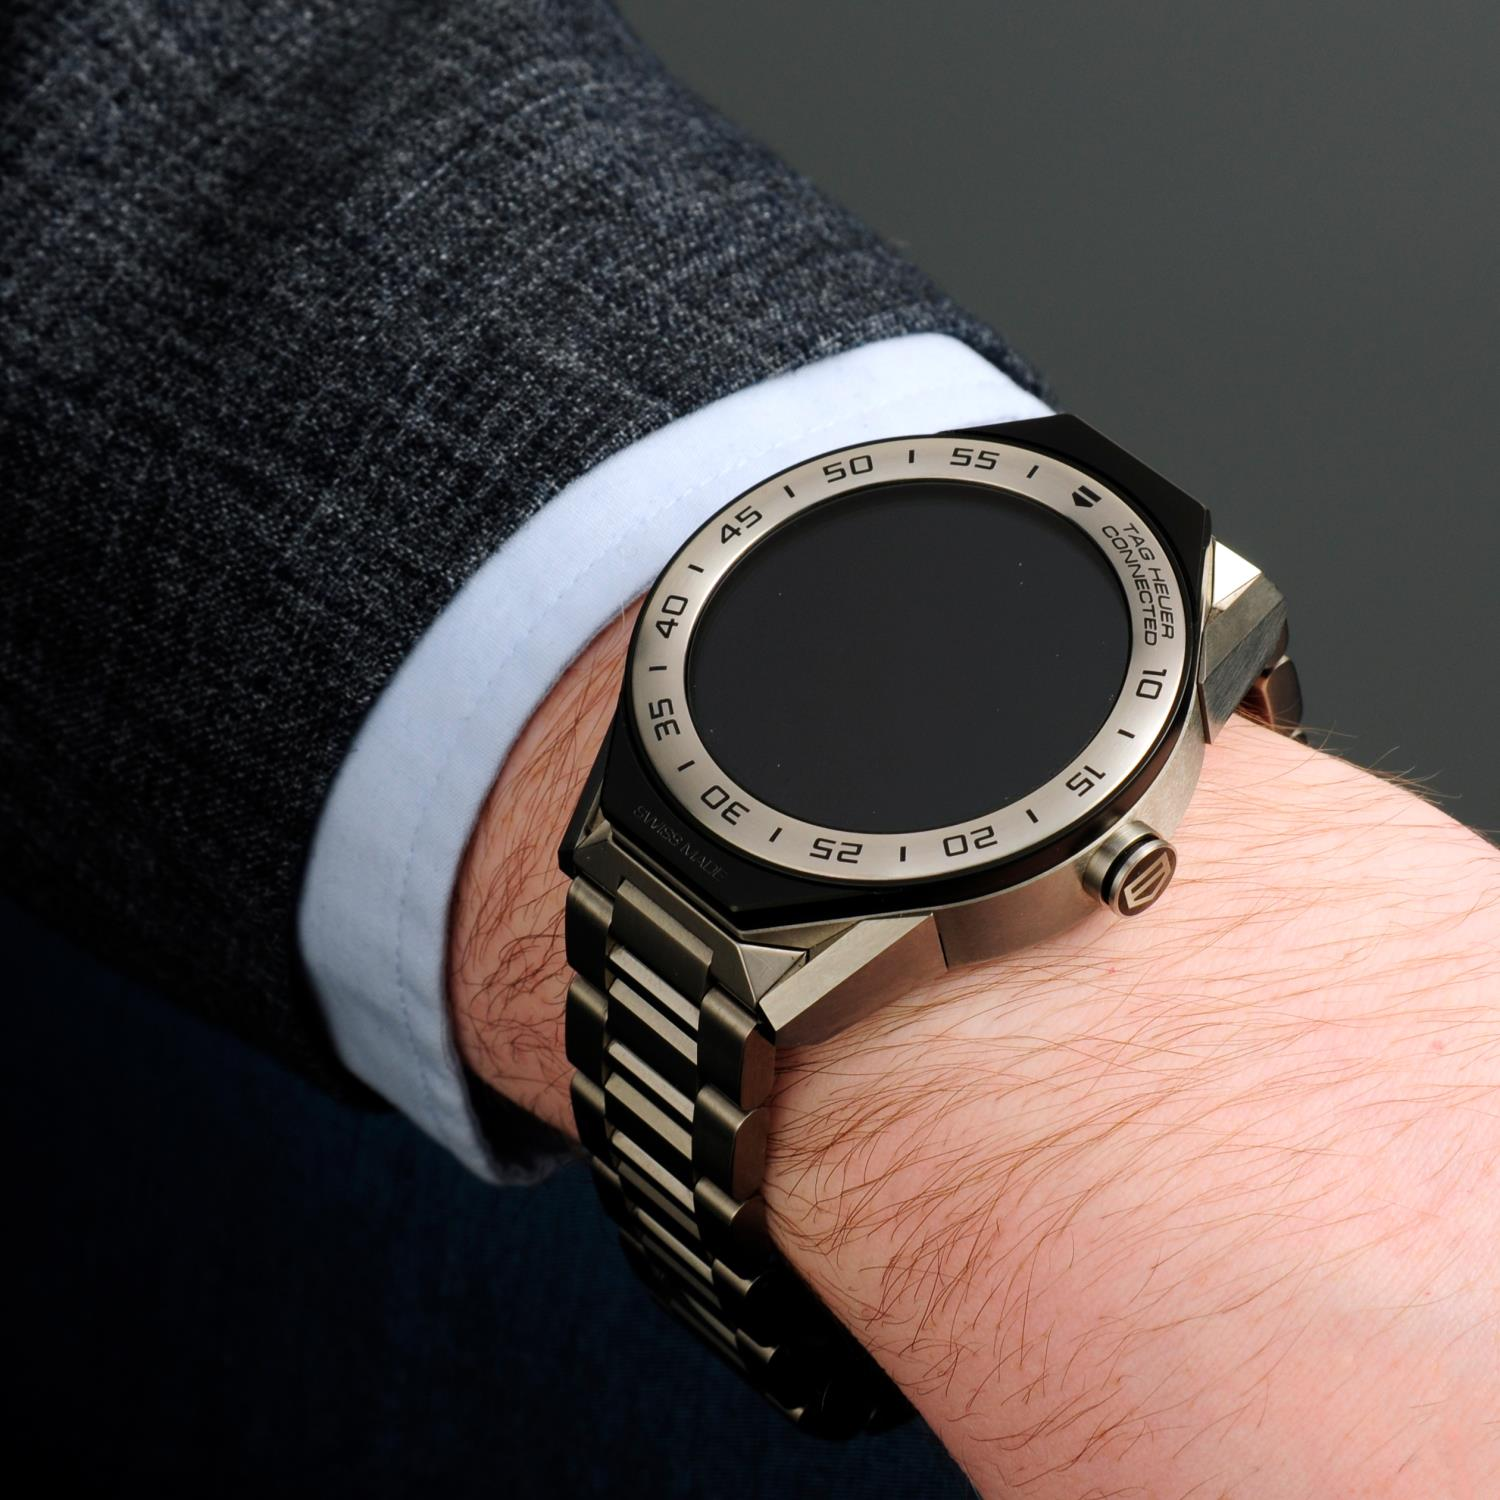 TAG HEUER - a Connected bracelet watch. - Image 3 of 6